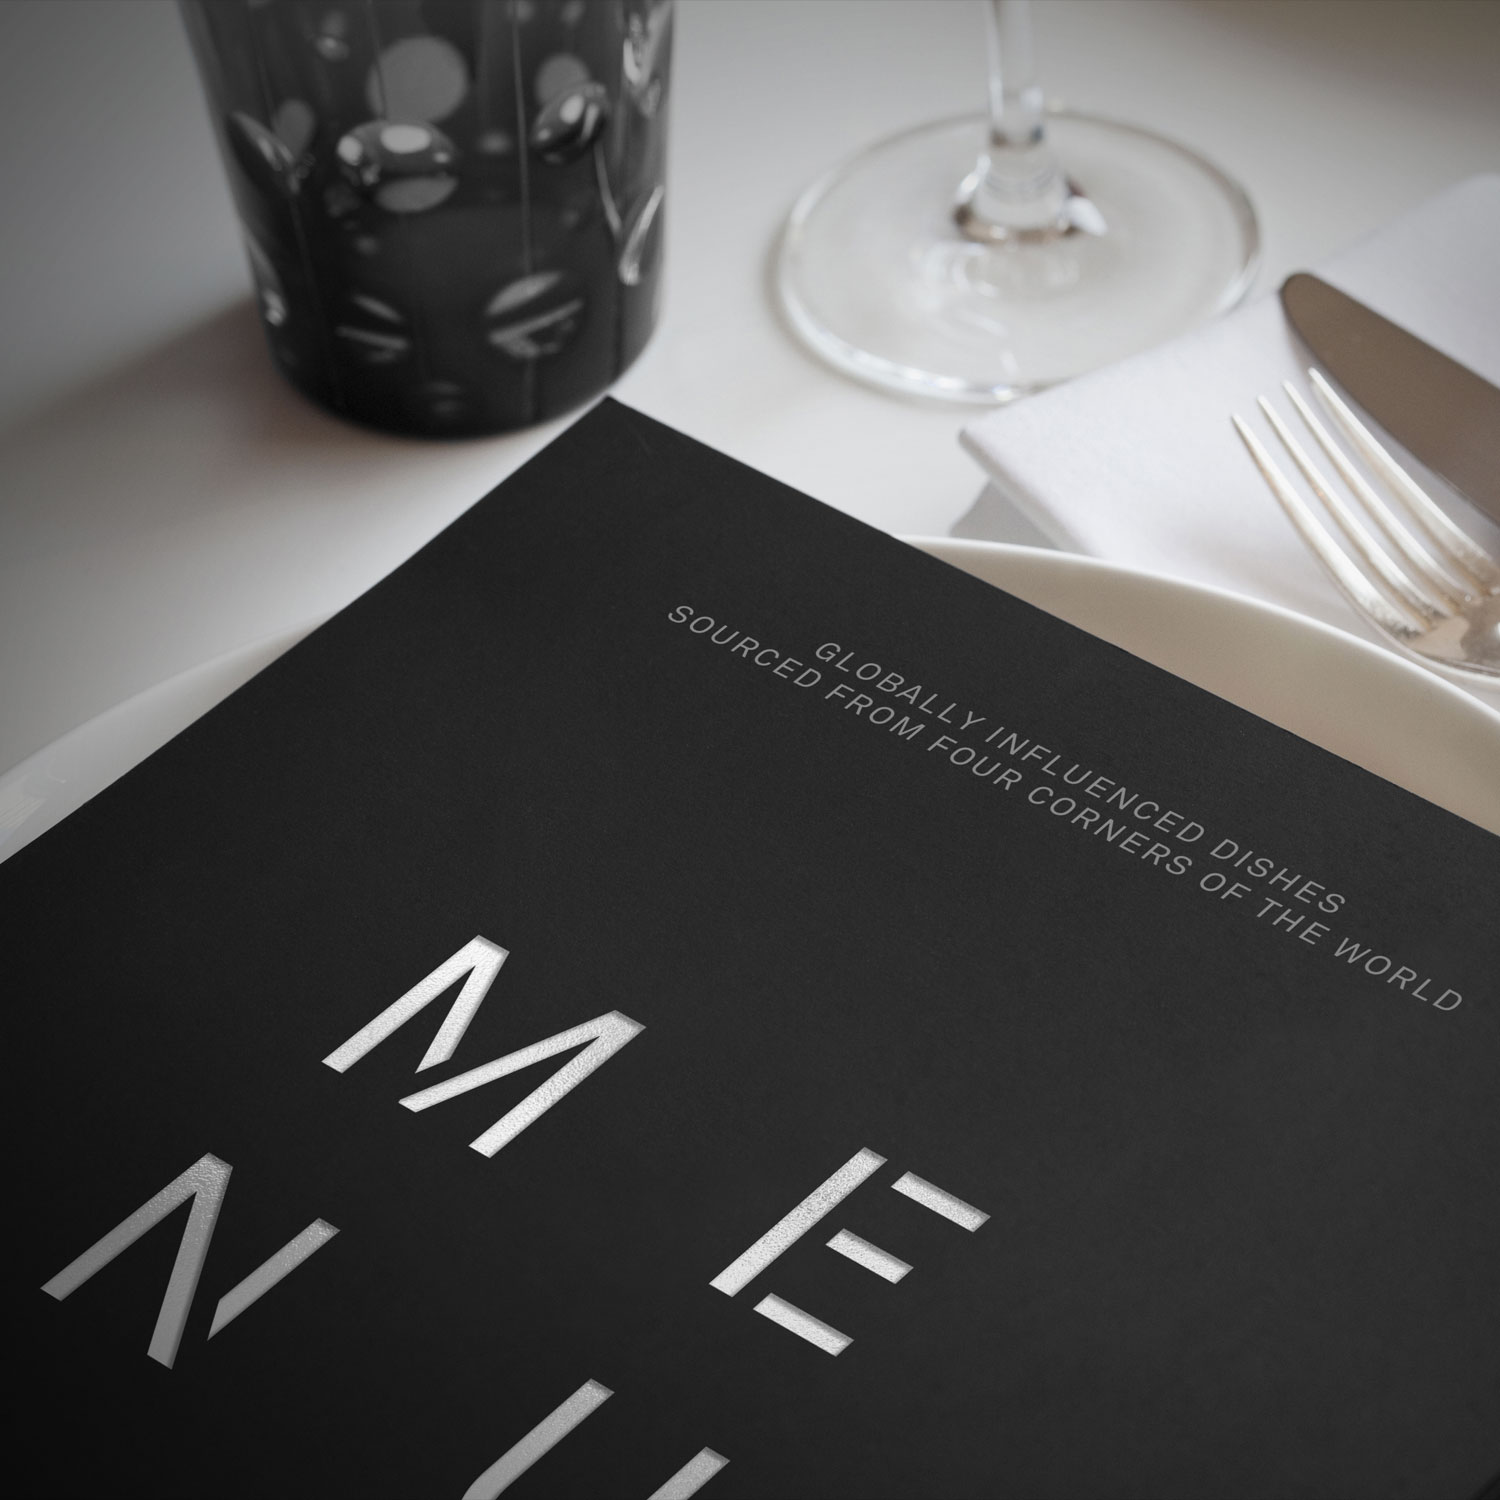 Restaurant branding, naming and menu for Newcastle United FC Four Corners by Altogether Creative.